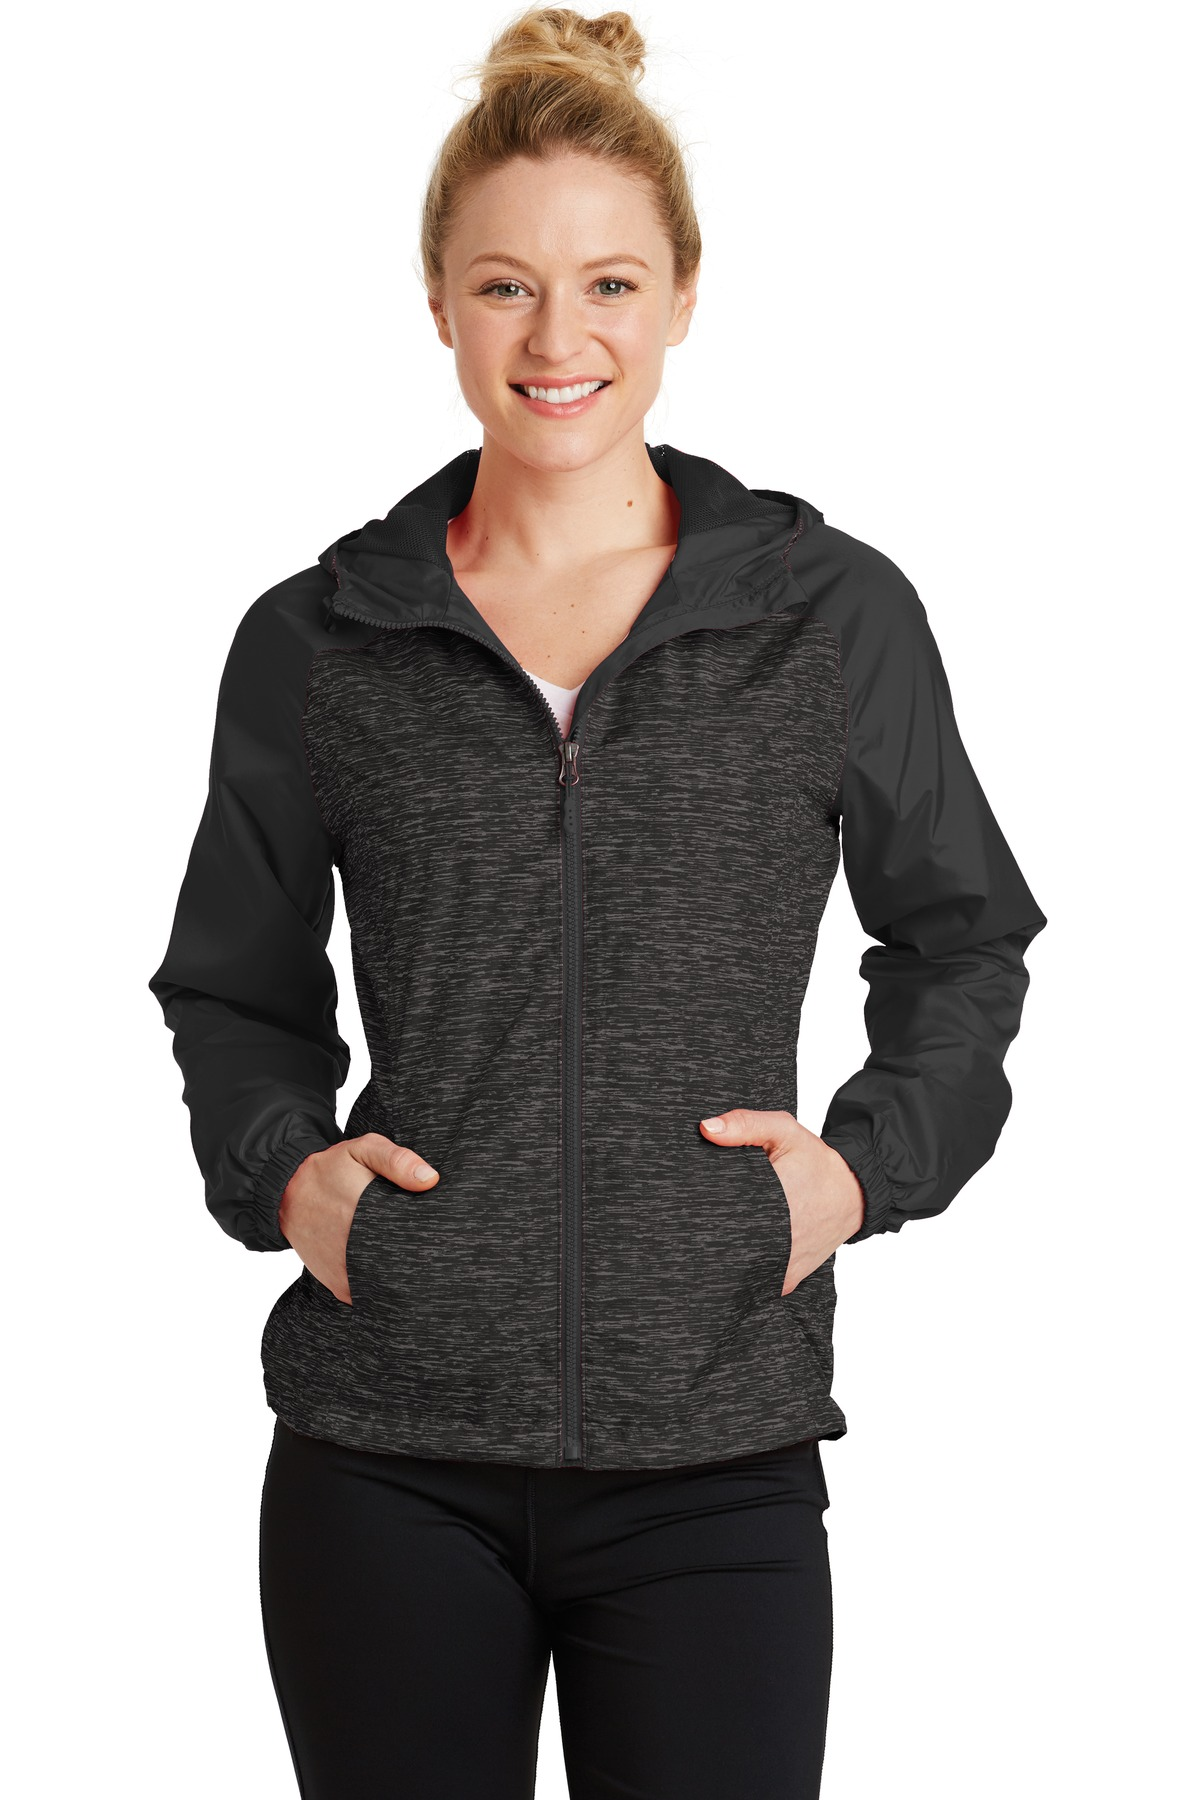 Sport-Tek ®  Ladies Heather Colorblock Raglan Hooded Wind Jacket. LST40 - Black Heather/ Black